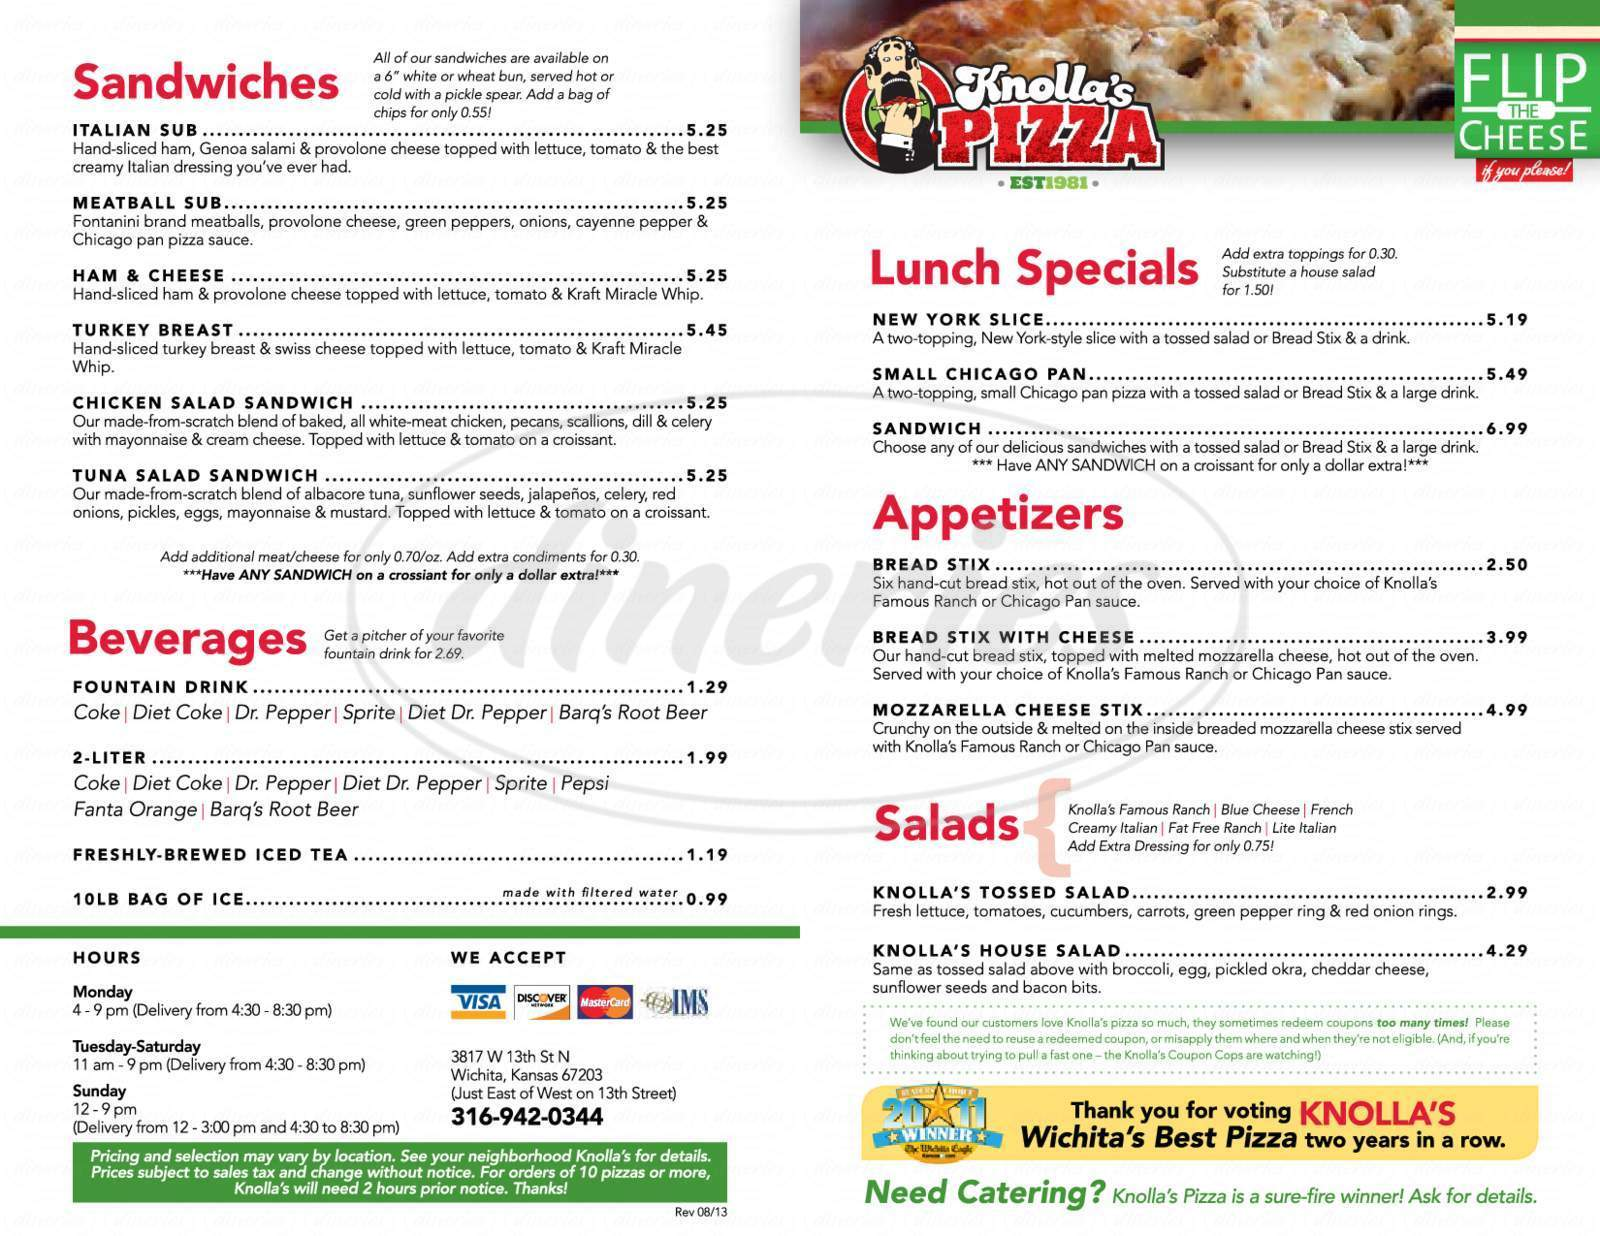 menu for Knolla's Pizza